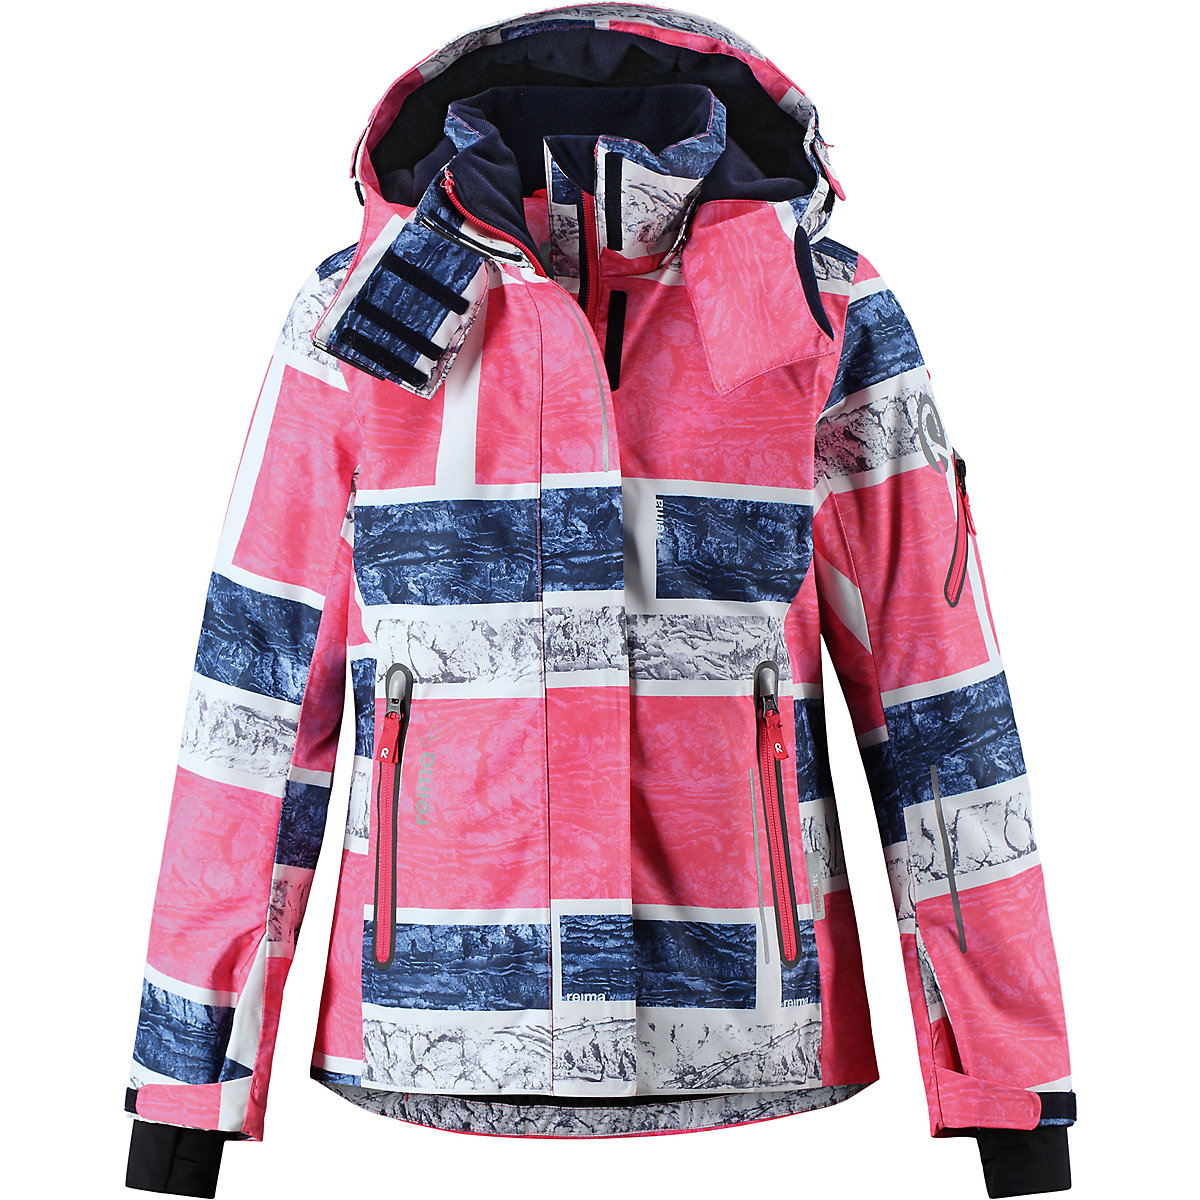 REIMA Jackets 8689577 for girls polyester winter  fur clothes girl 2016 new style popular 18 inch american girl doll pajamas clothes dress for christmas gift abd 072